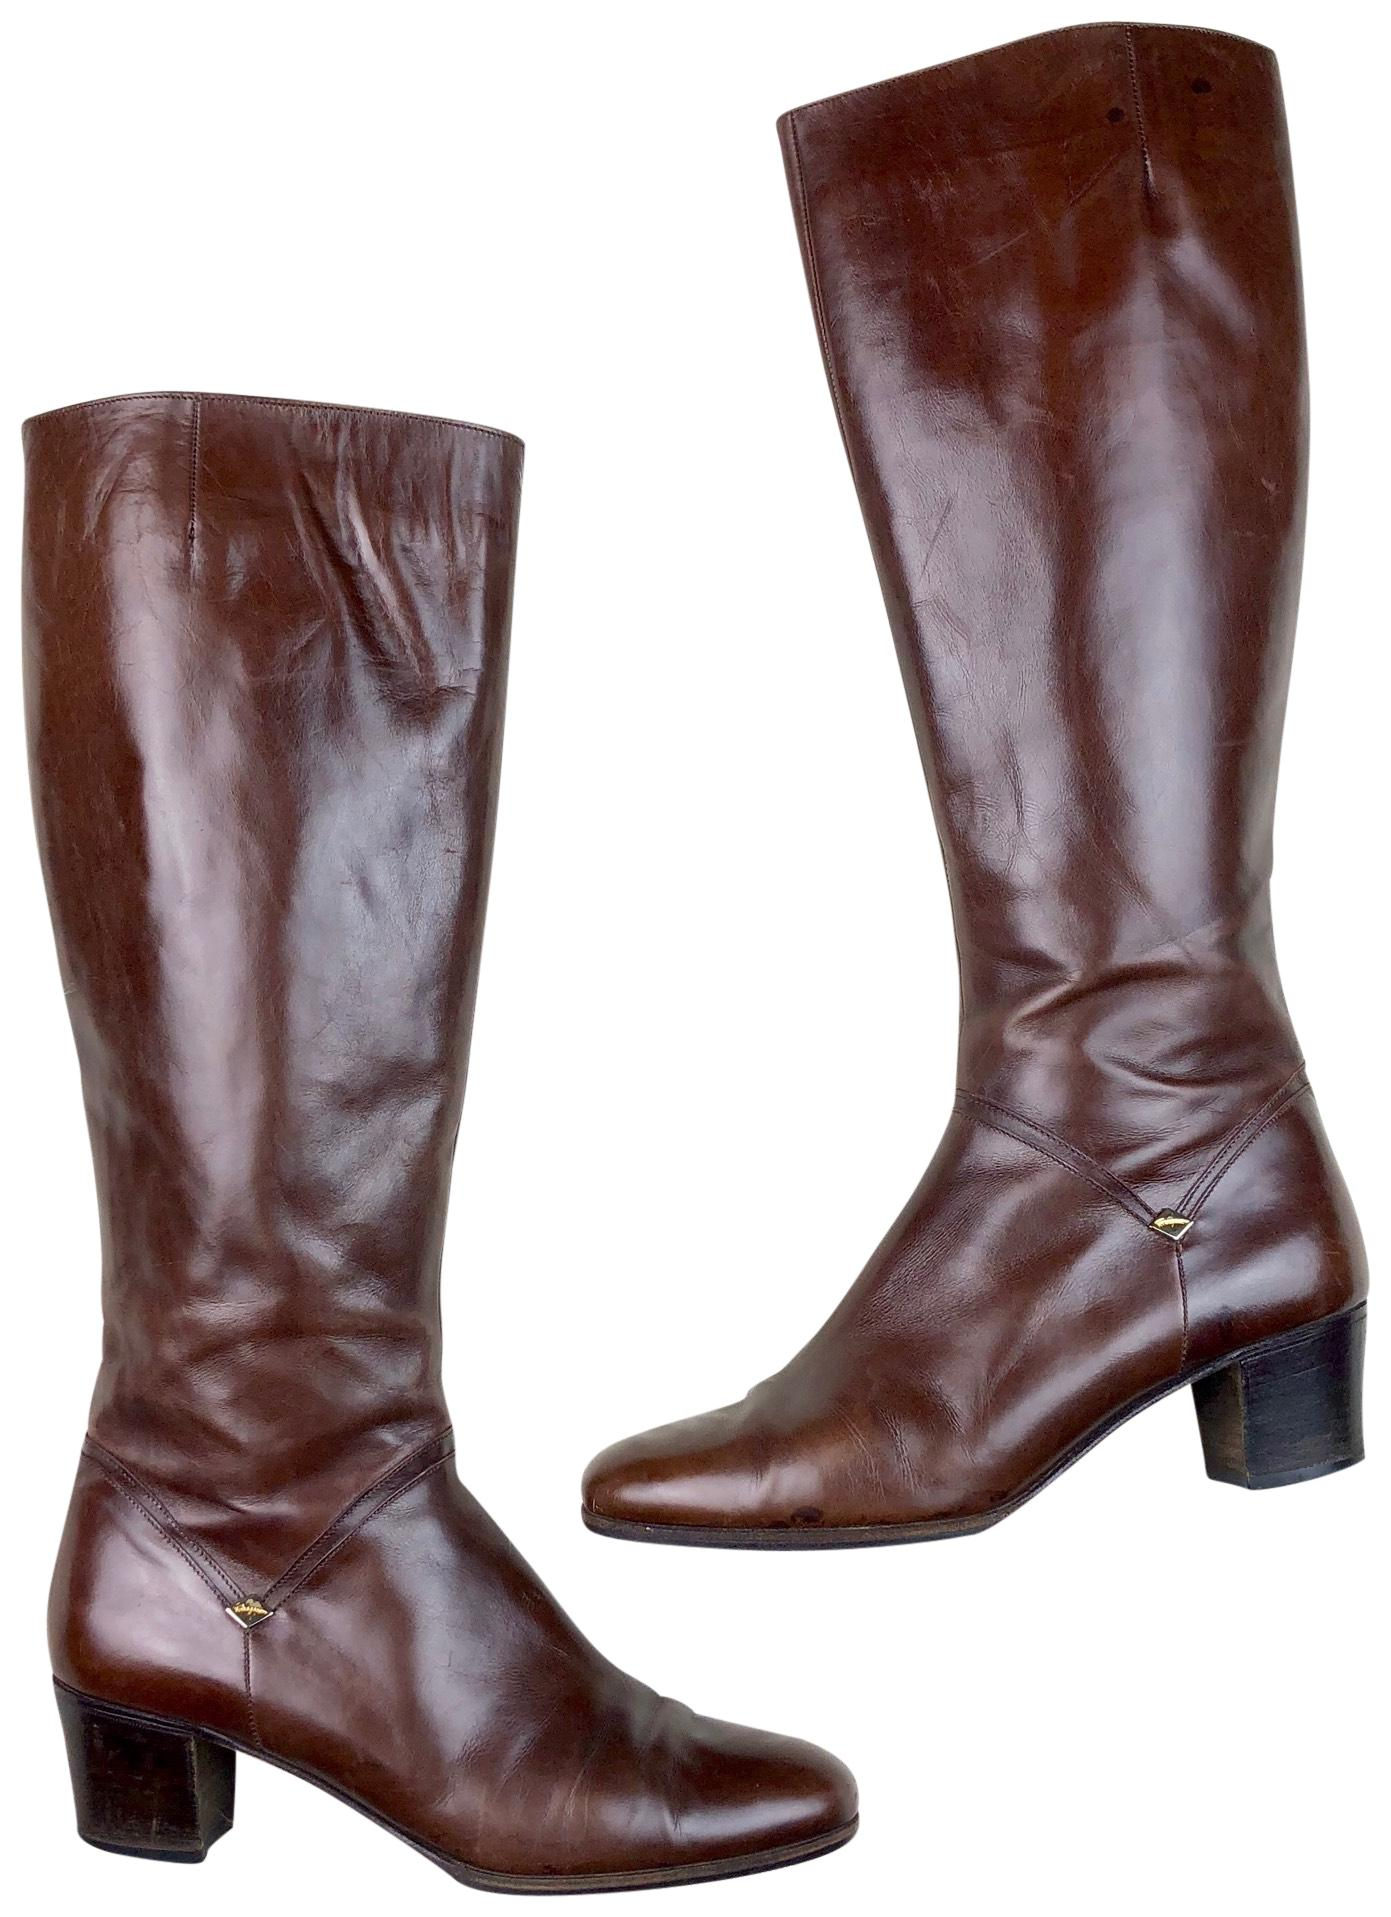 bfba2e1c685 Salvatore Ferragamo Brown Tall Heeled Riding Boots Booties Size US 6.5 6.5  6.5 Narrow (